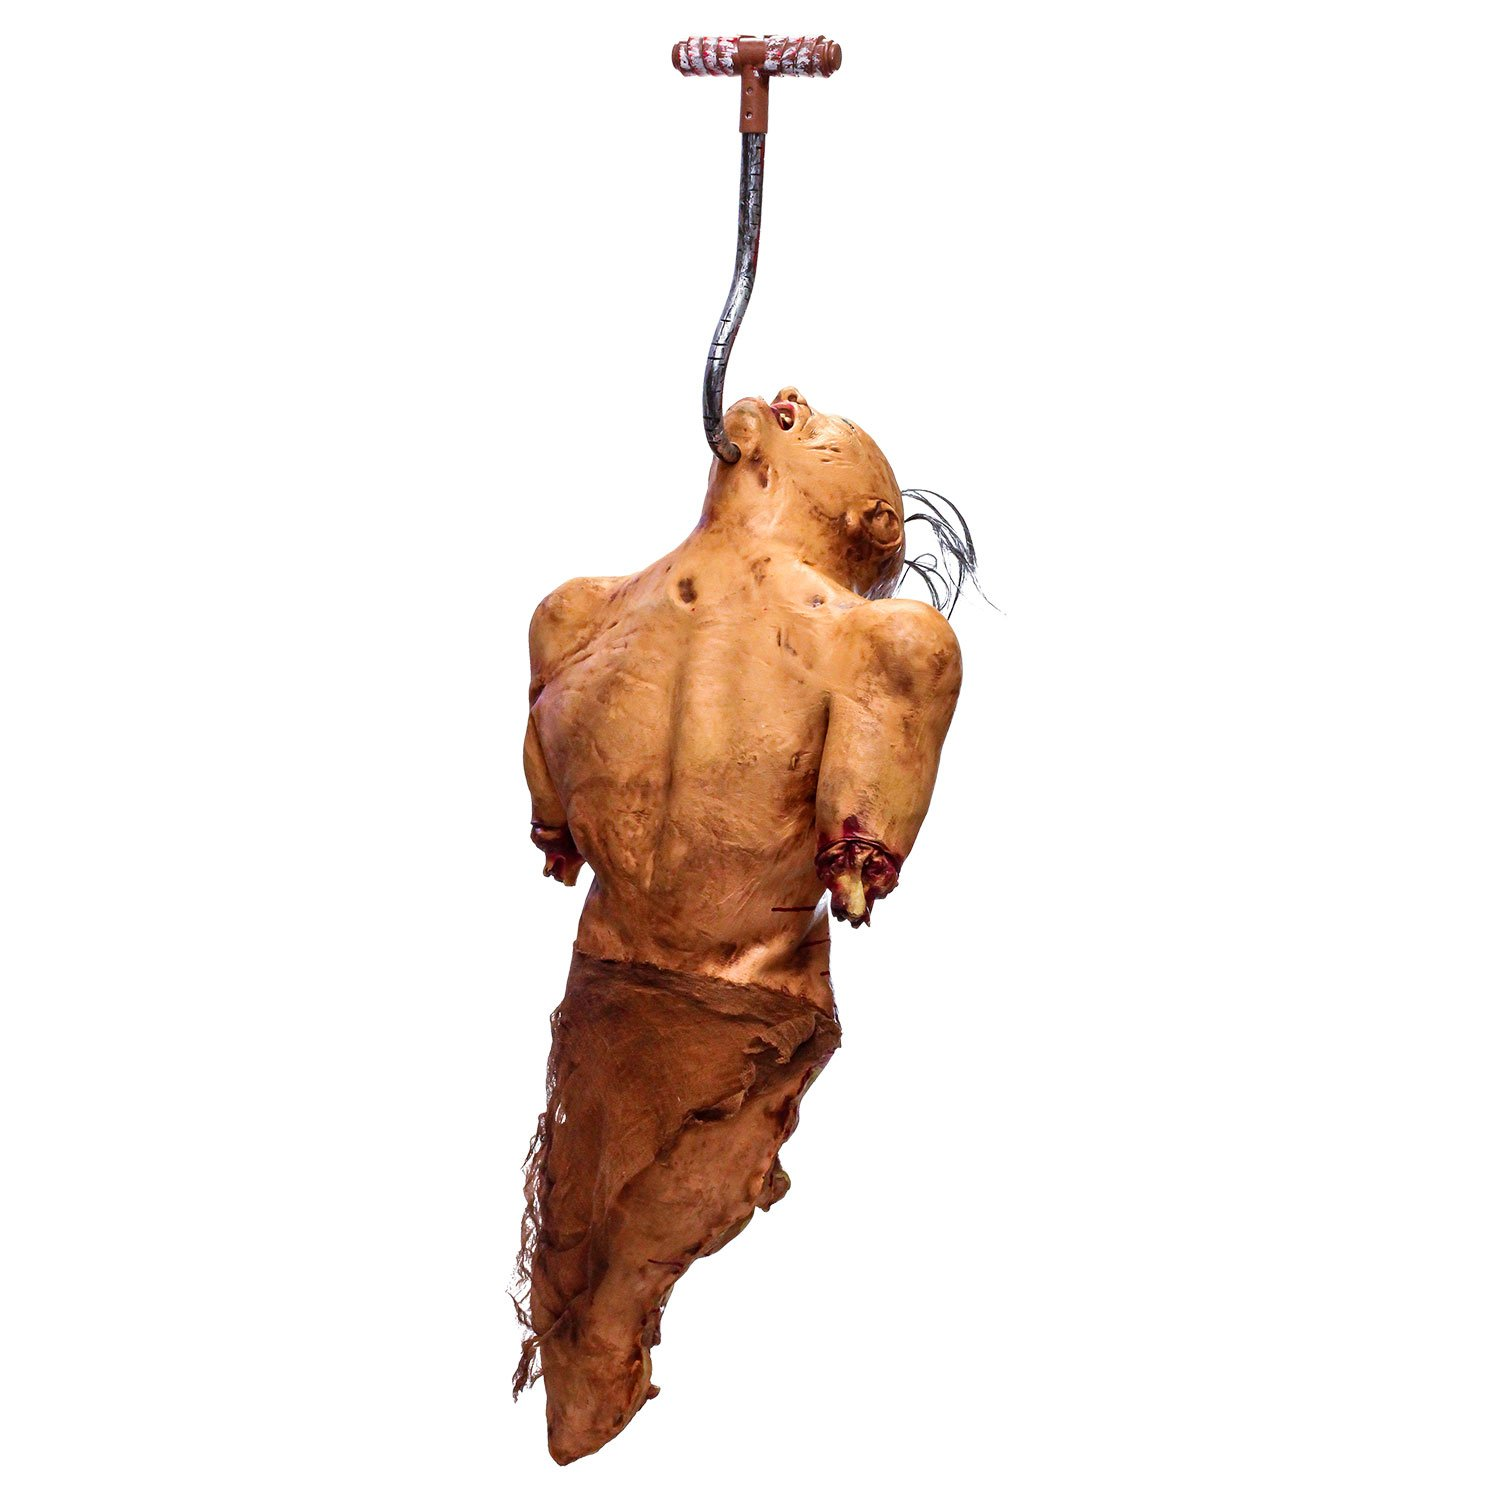 Halloween Haunters Life-Size Zombie Man Ghoul Torso Hanging From Meat Hook In Chin Prop Decoration - Thick Rubber Latex Scary Human Dead Body, Severed Arms & Legs, Exposed Bones